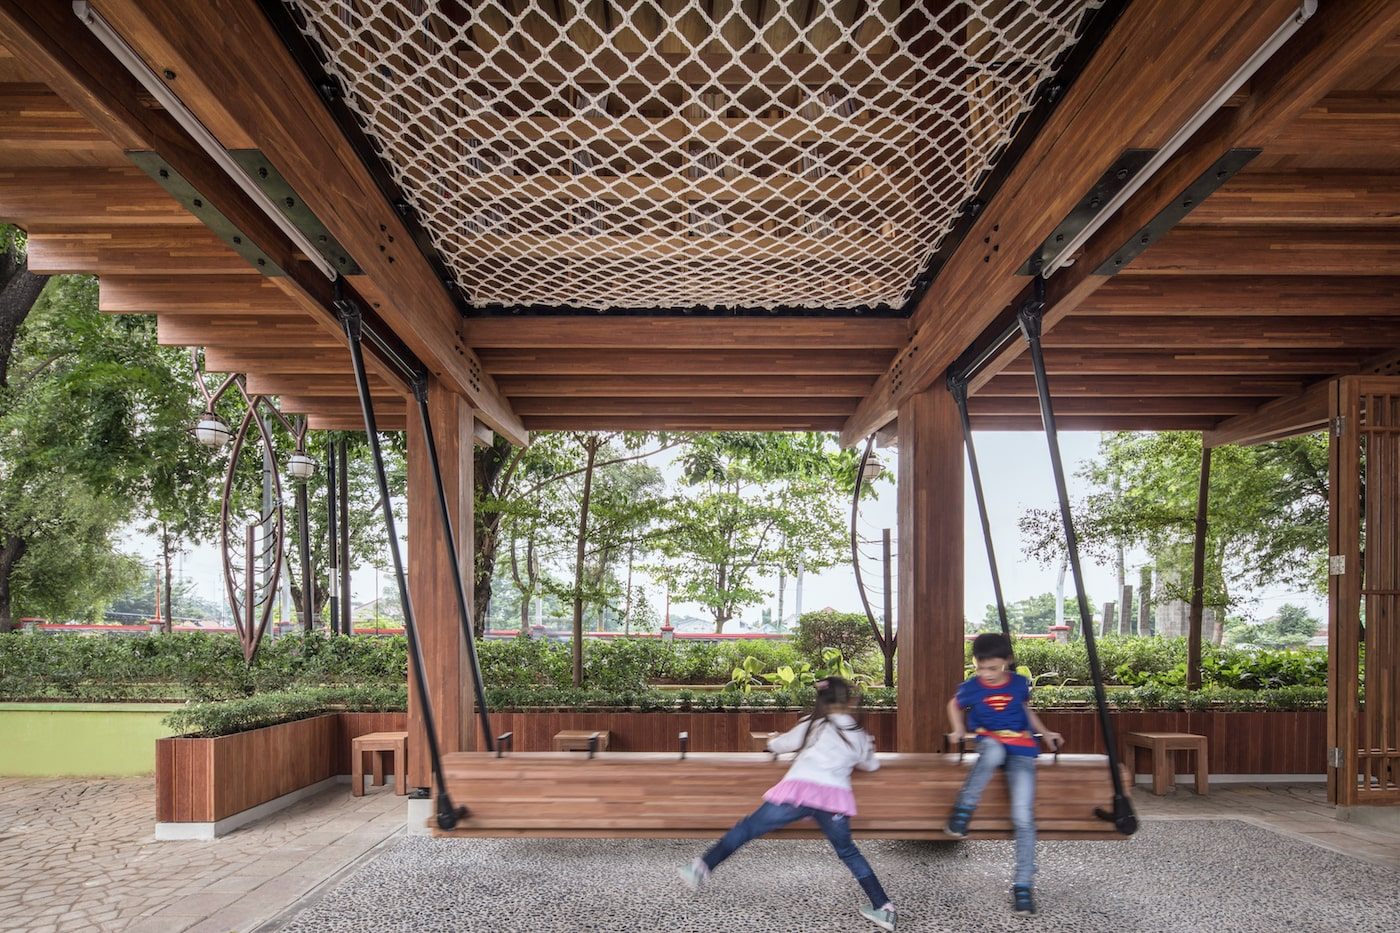 Kids playing on timber swing underneath timber library